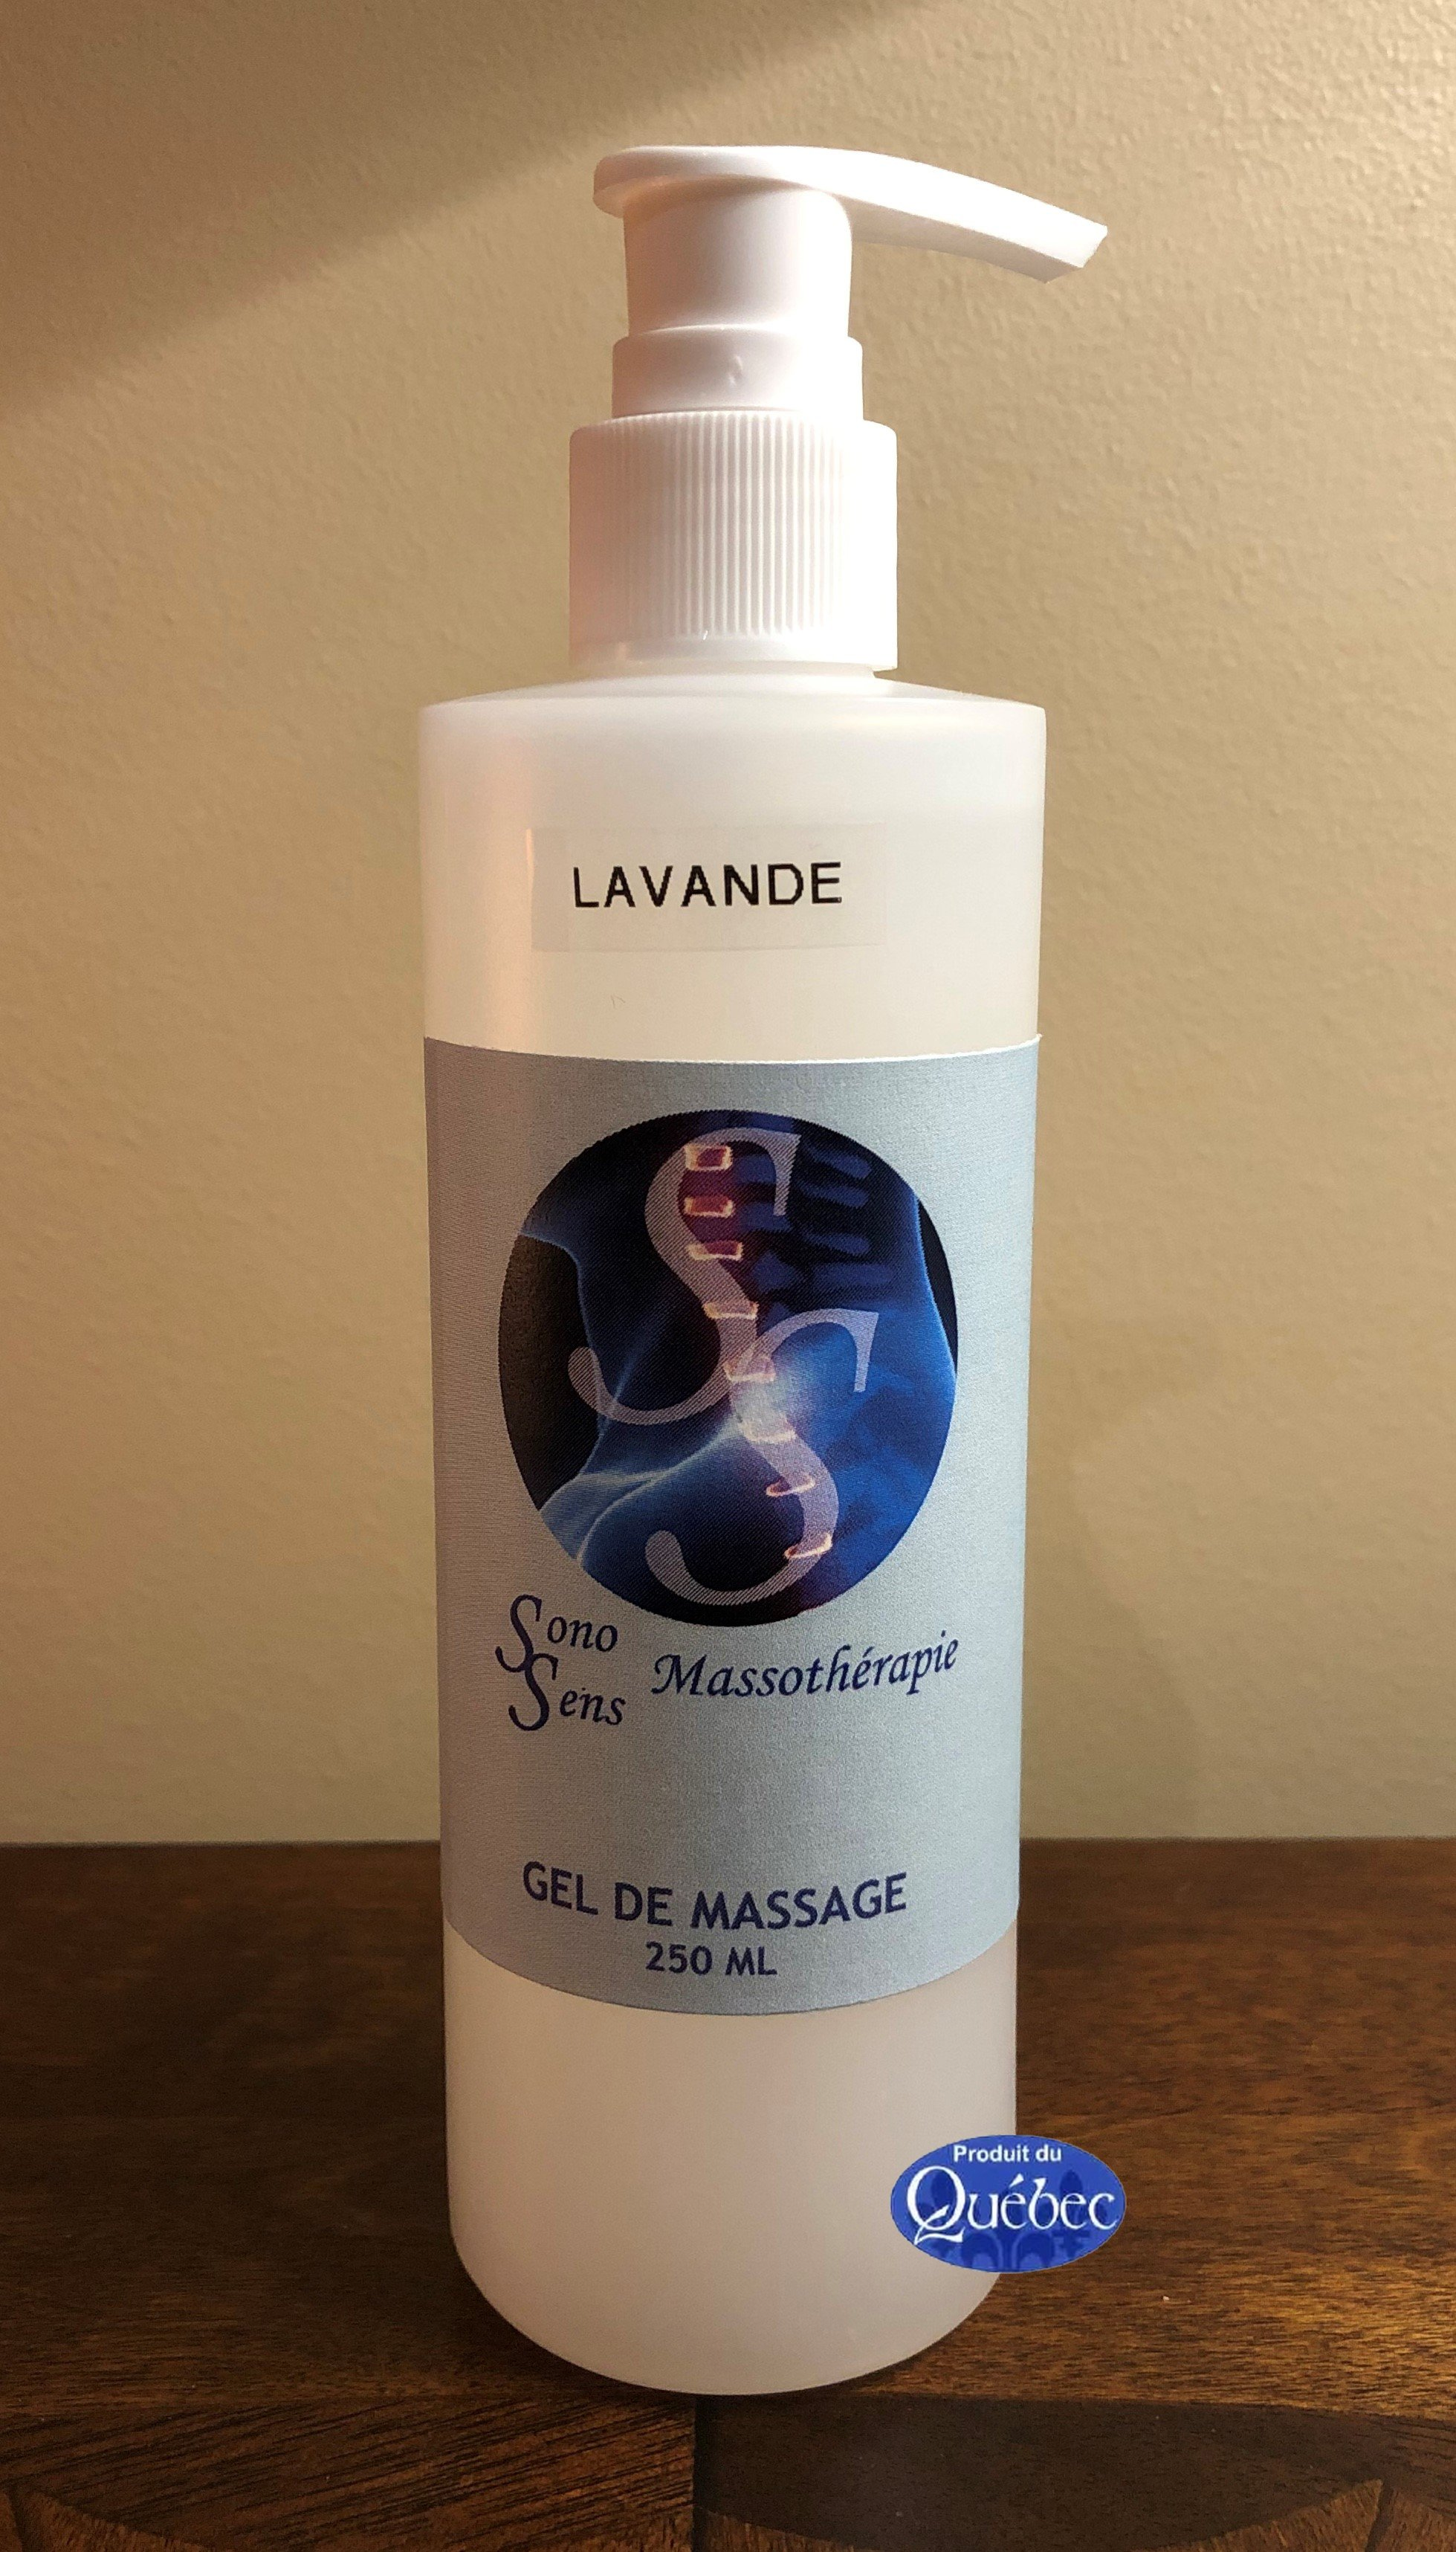 Gel de massage Ridha 250 ml Avec HE de Lavande ou d'Agrumes 12.38$ plus taxes